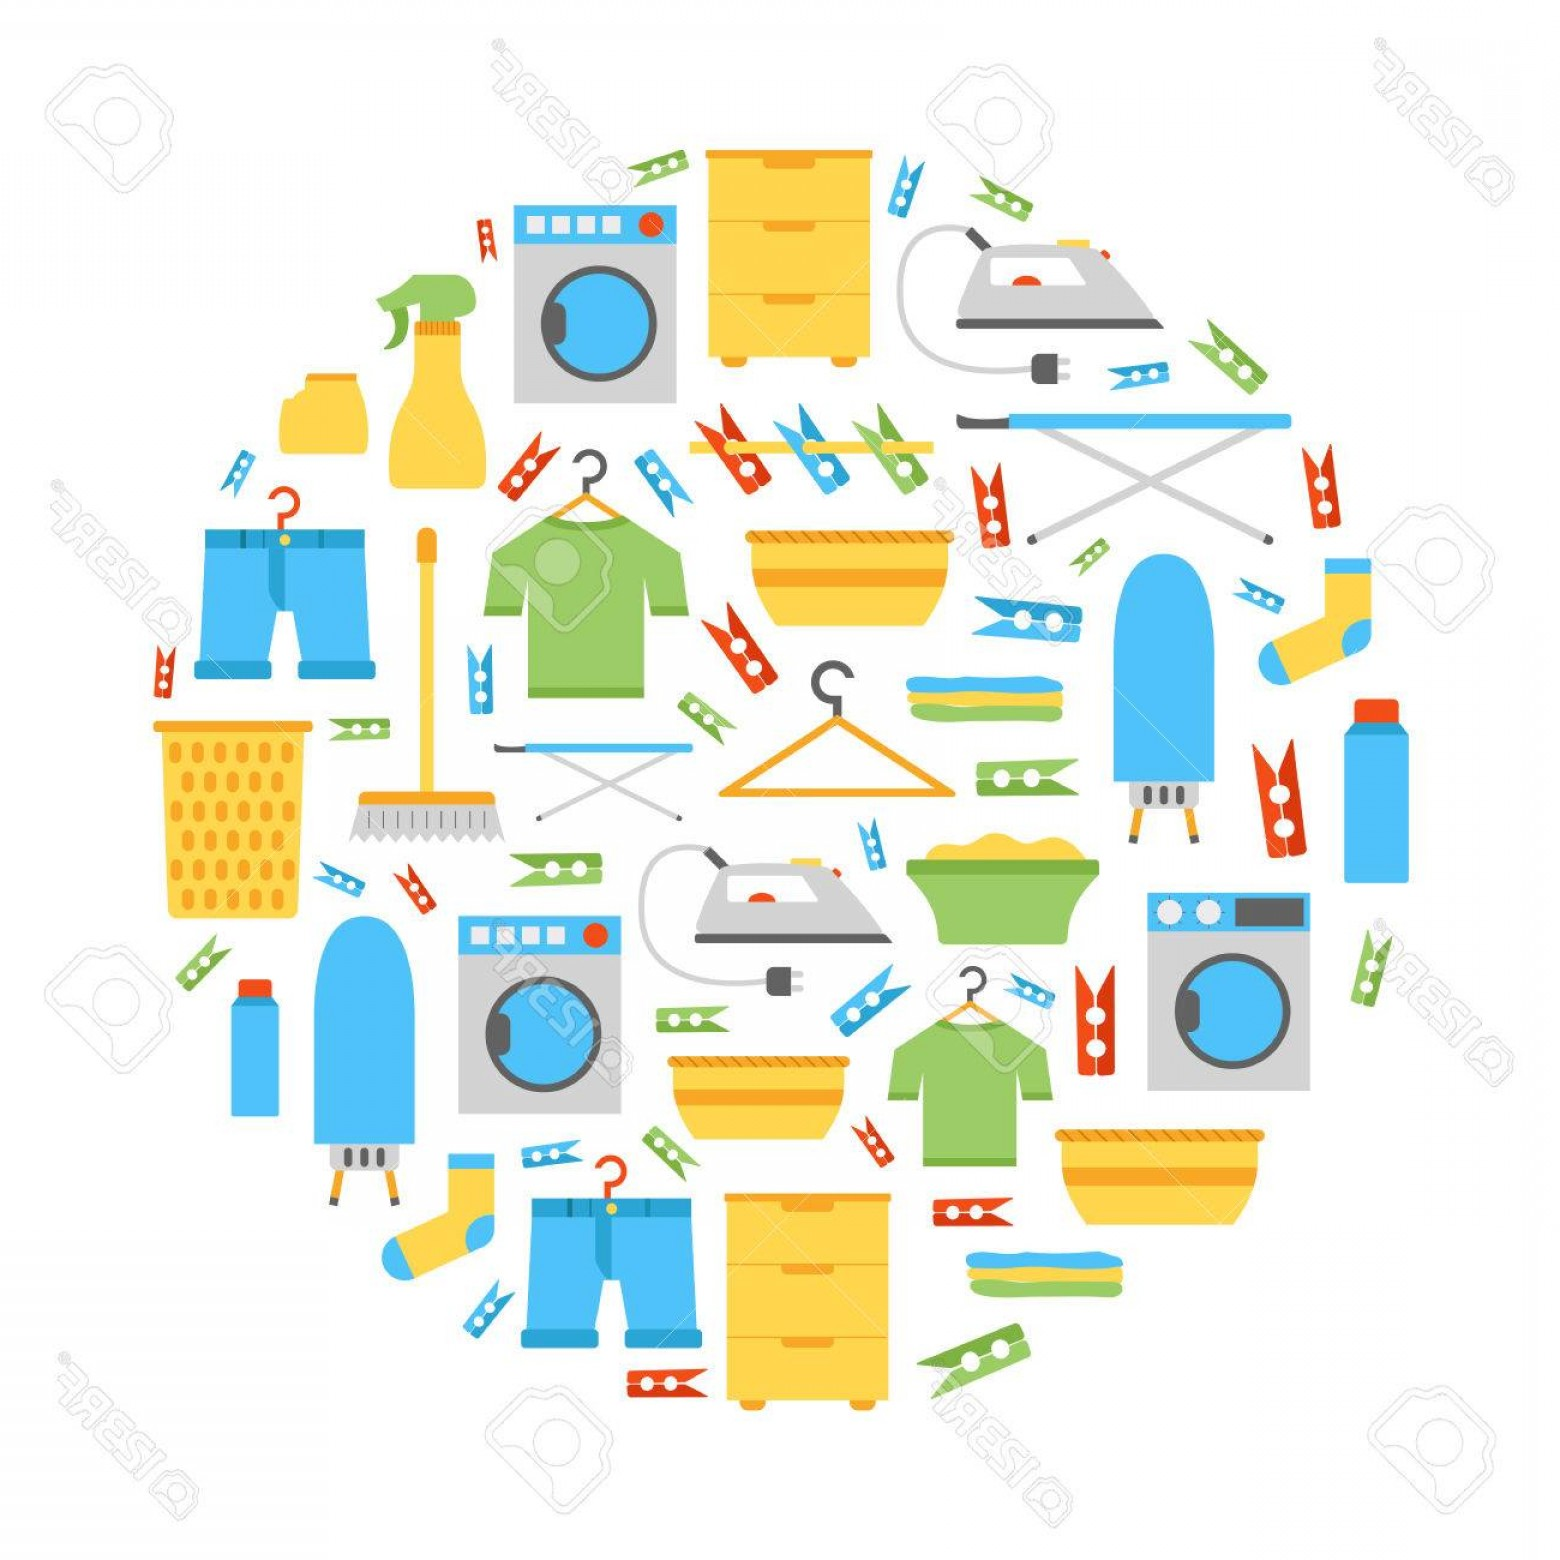 Clothes For Washing Vector: Photostock Vector Vector Illustration With Flat Laundry Room Background Washing Machine Dryer Iron Clothes Hanger Iron